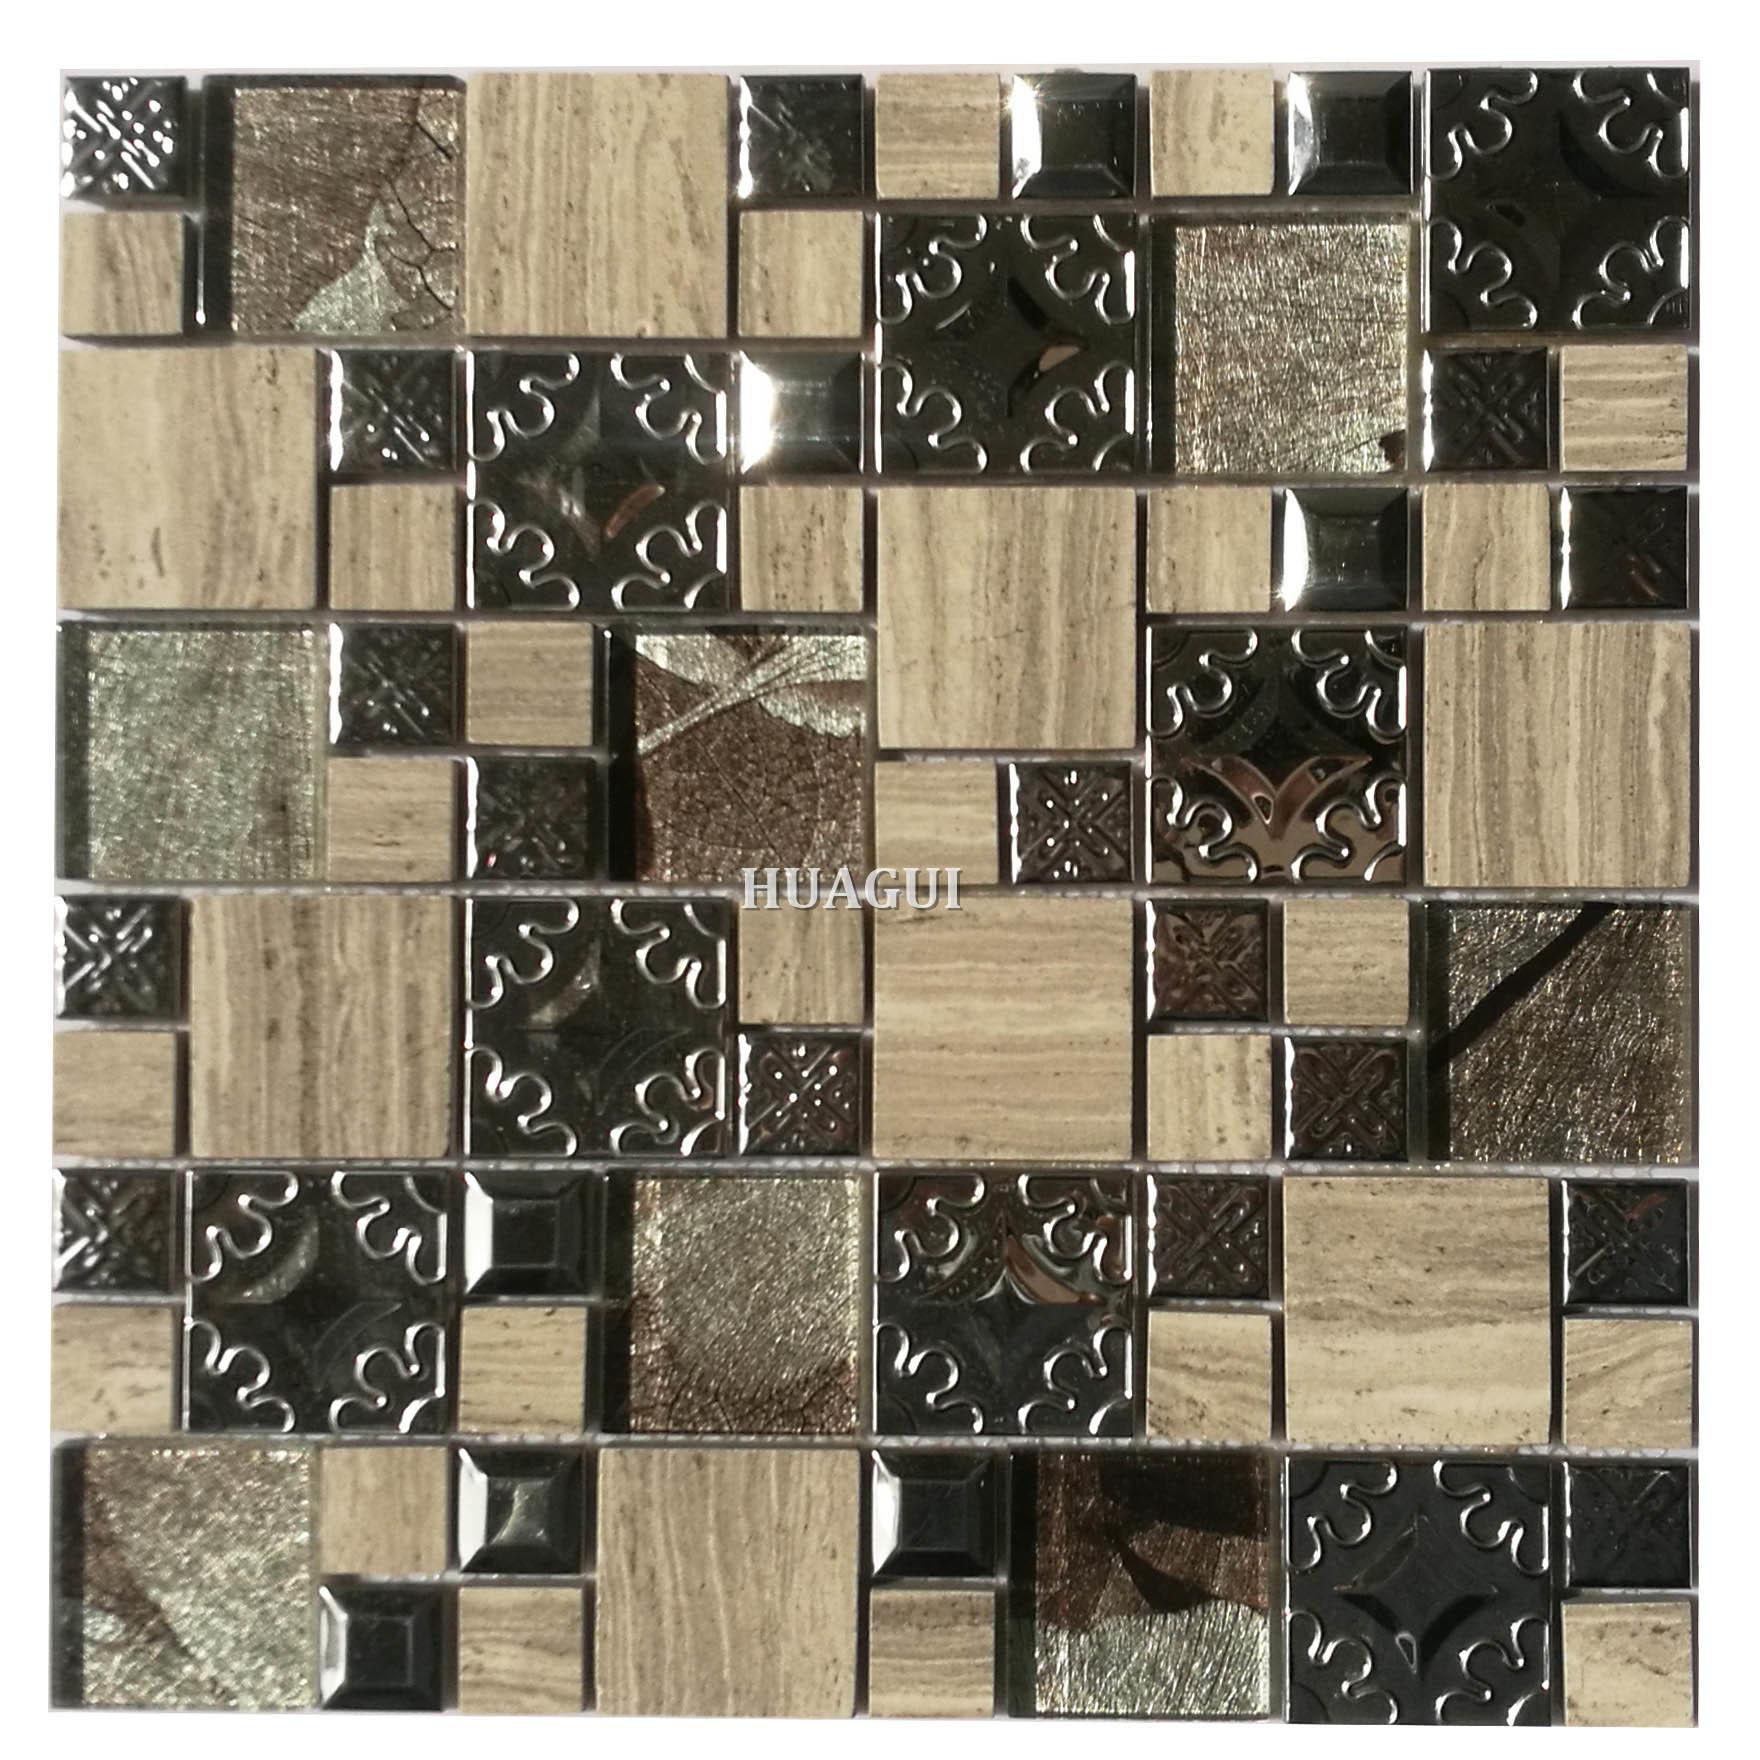 300x300mm square shape glass, metal and stone mosaic tile